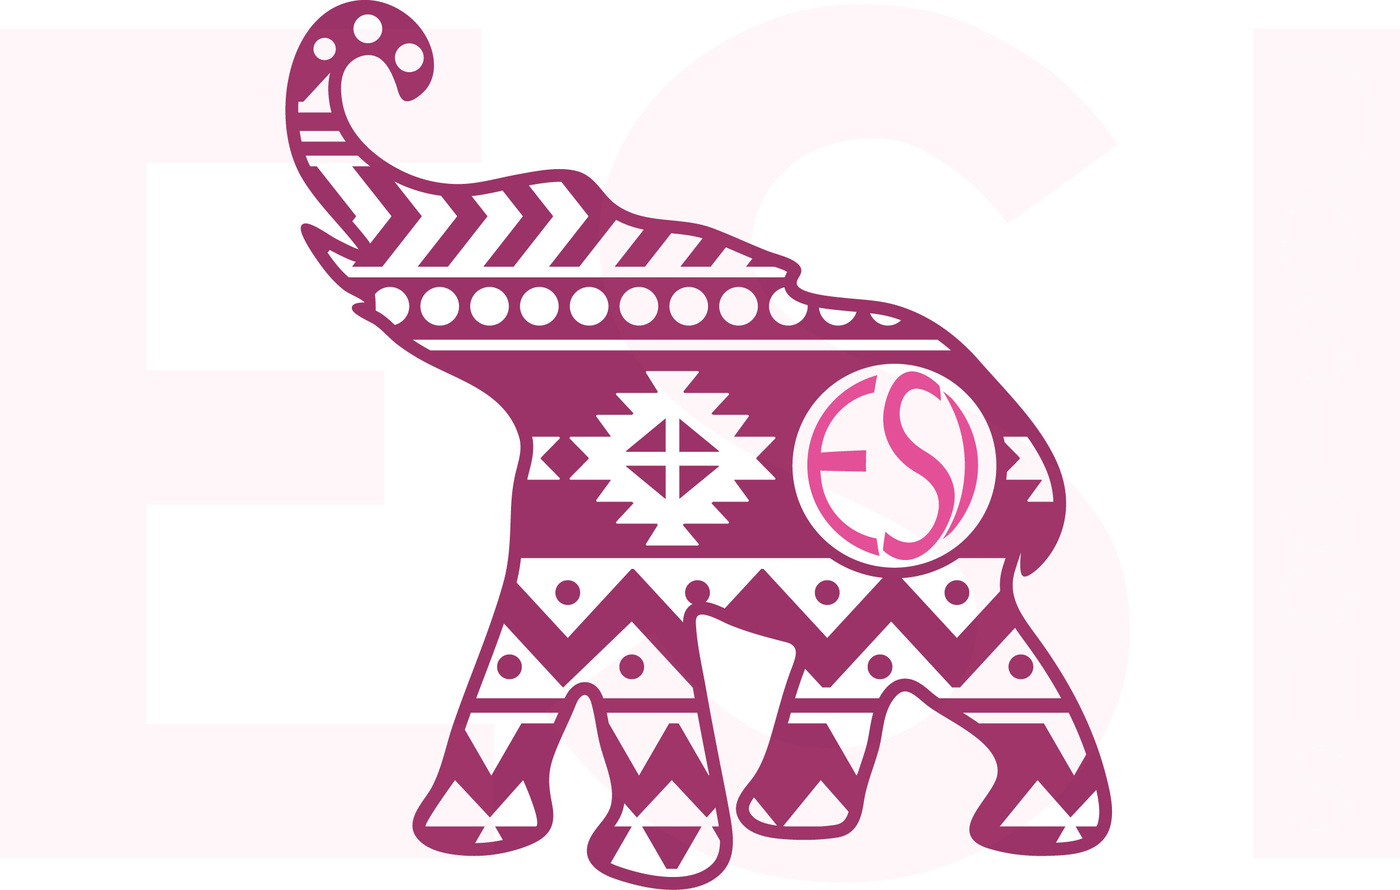 aztec elephant clipart 20 free Cliparts   Download images on